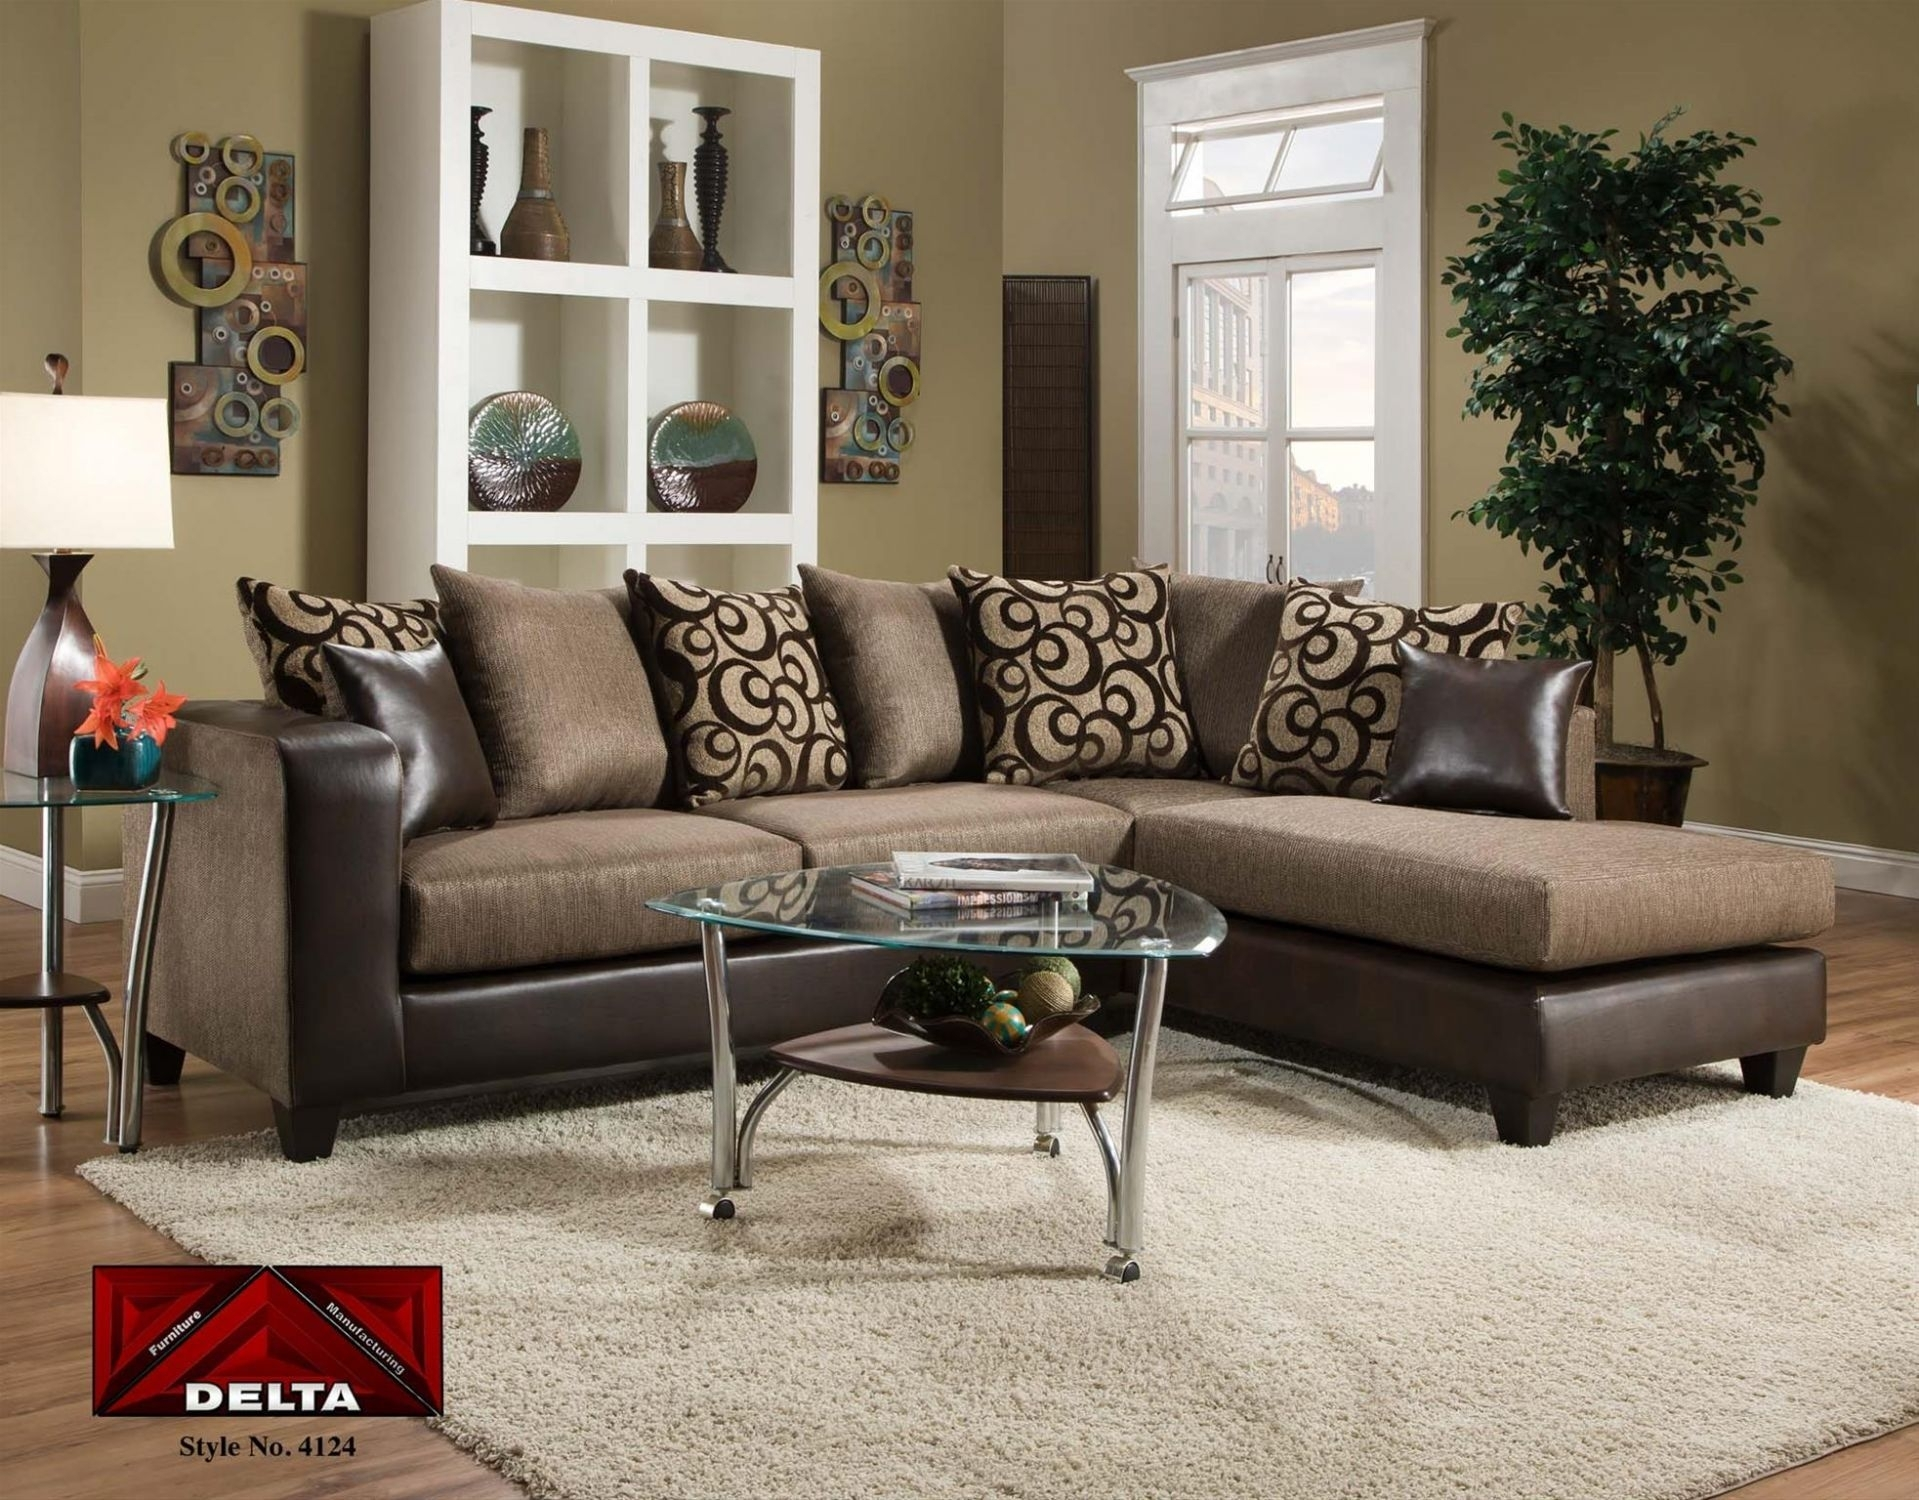 Update Your Living Room With Our Designer Chaise Sectional | $798 inside Joplin Mo Sectional Sofas (Image 10 of 10)